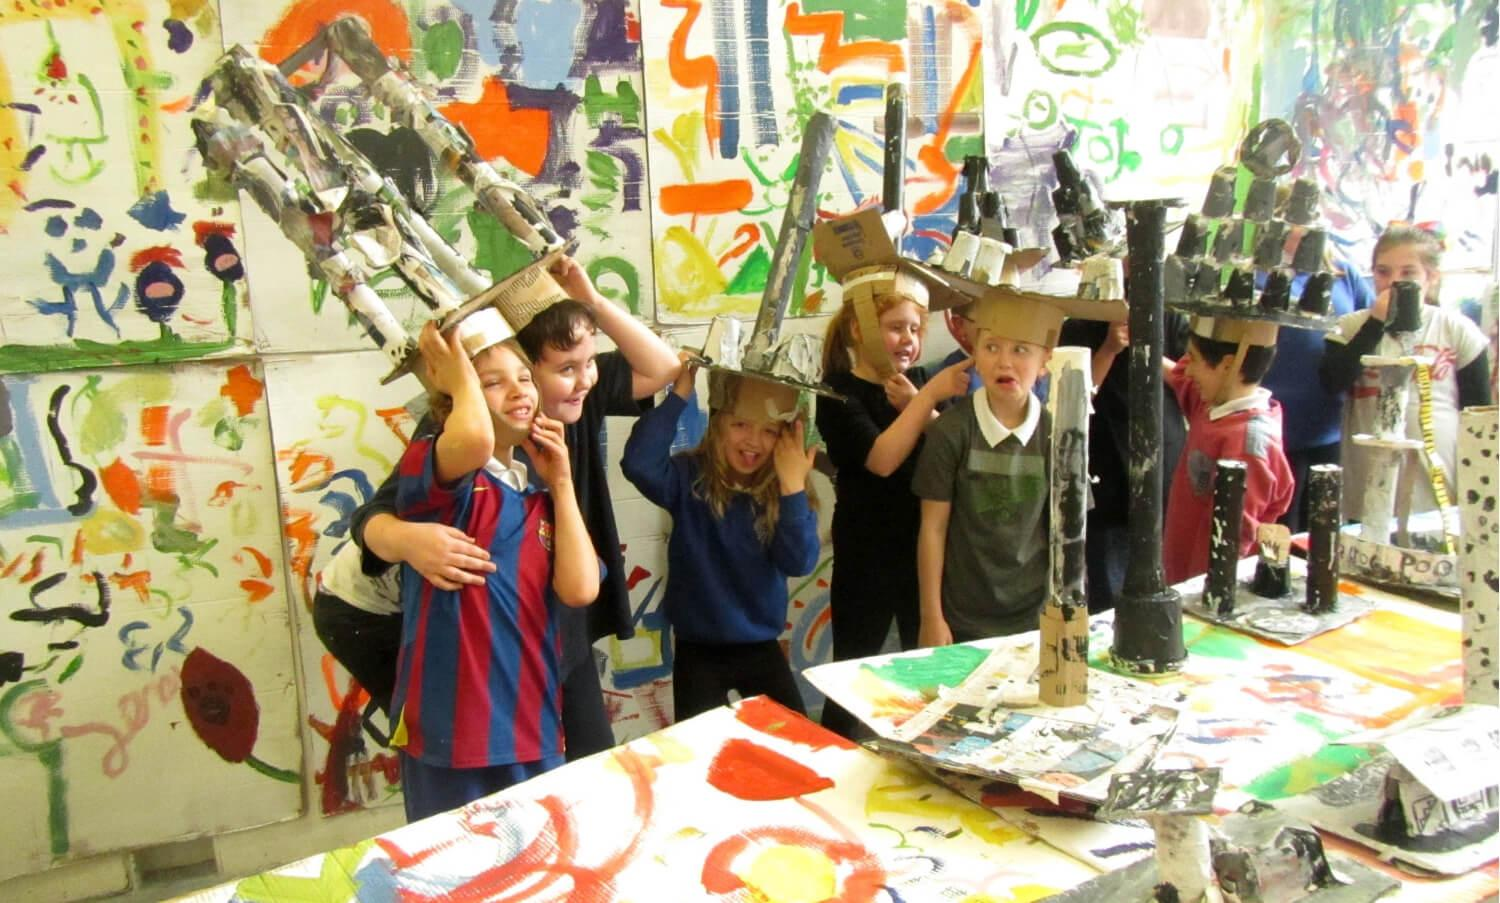 School children at Edinburgh Sculpture Work displaying headwear creations that they have made. Image by: Jedrzej Cichosz